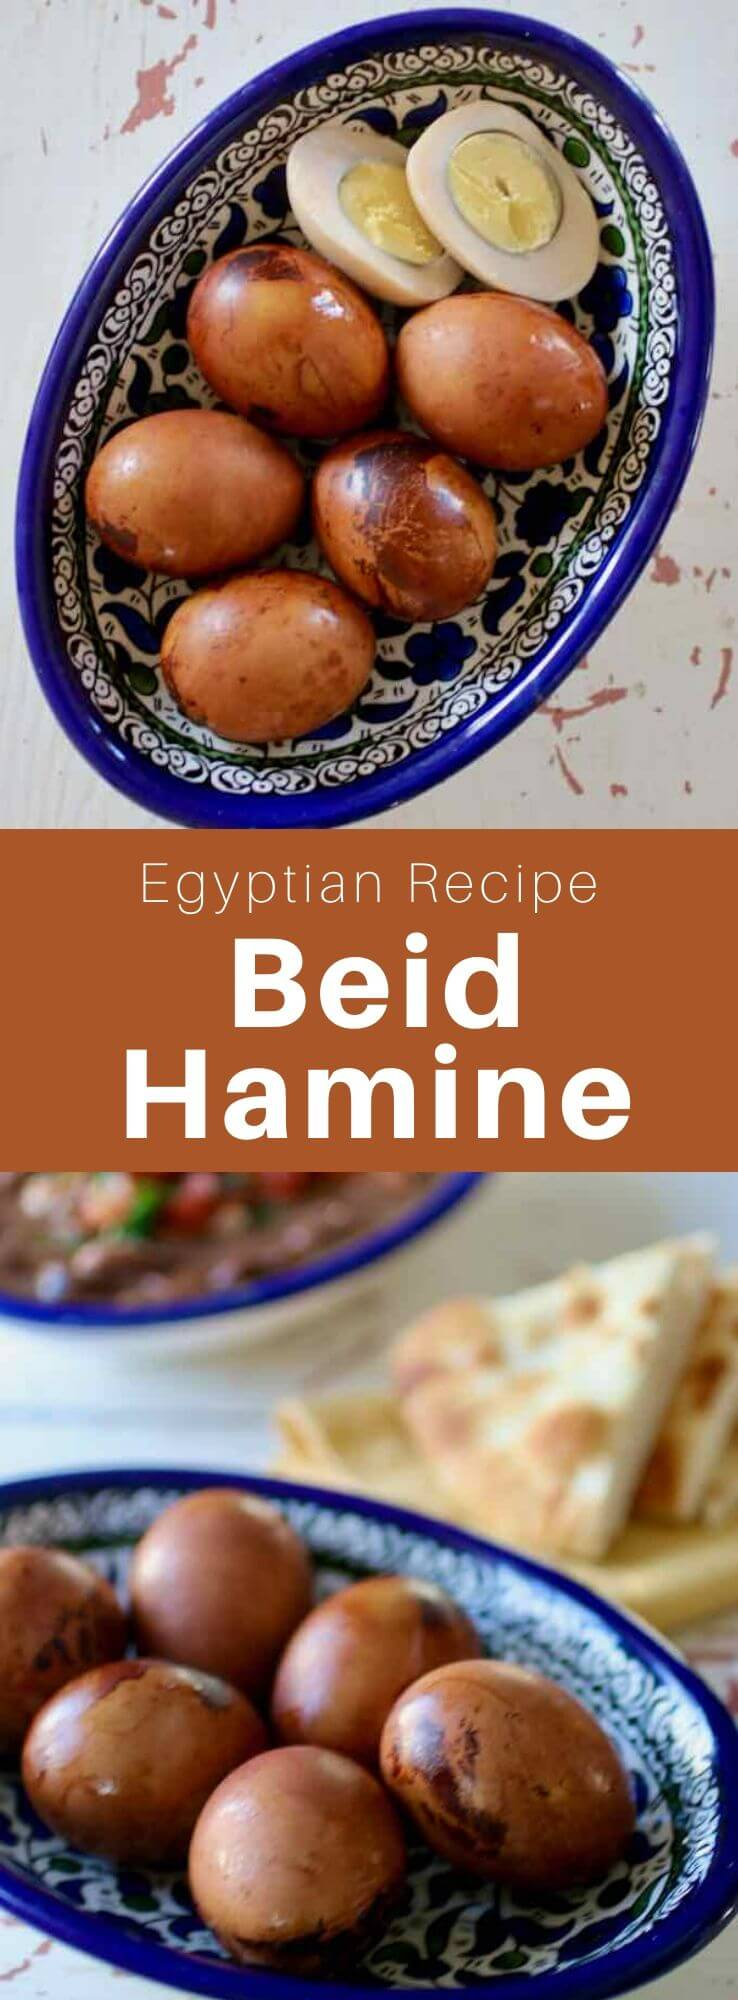 Beid hamine is a tradition of Sephardic Jewish cuisine. They are long simmered eggs found in Egypt, North Africa and Spain. #Egypt #EgyptianCuisine #EgyptianFood #EgyptianRecipe #WorldCuisine #196flavors